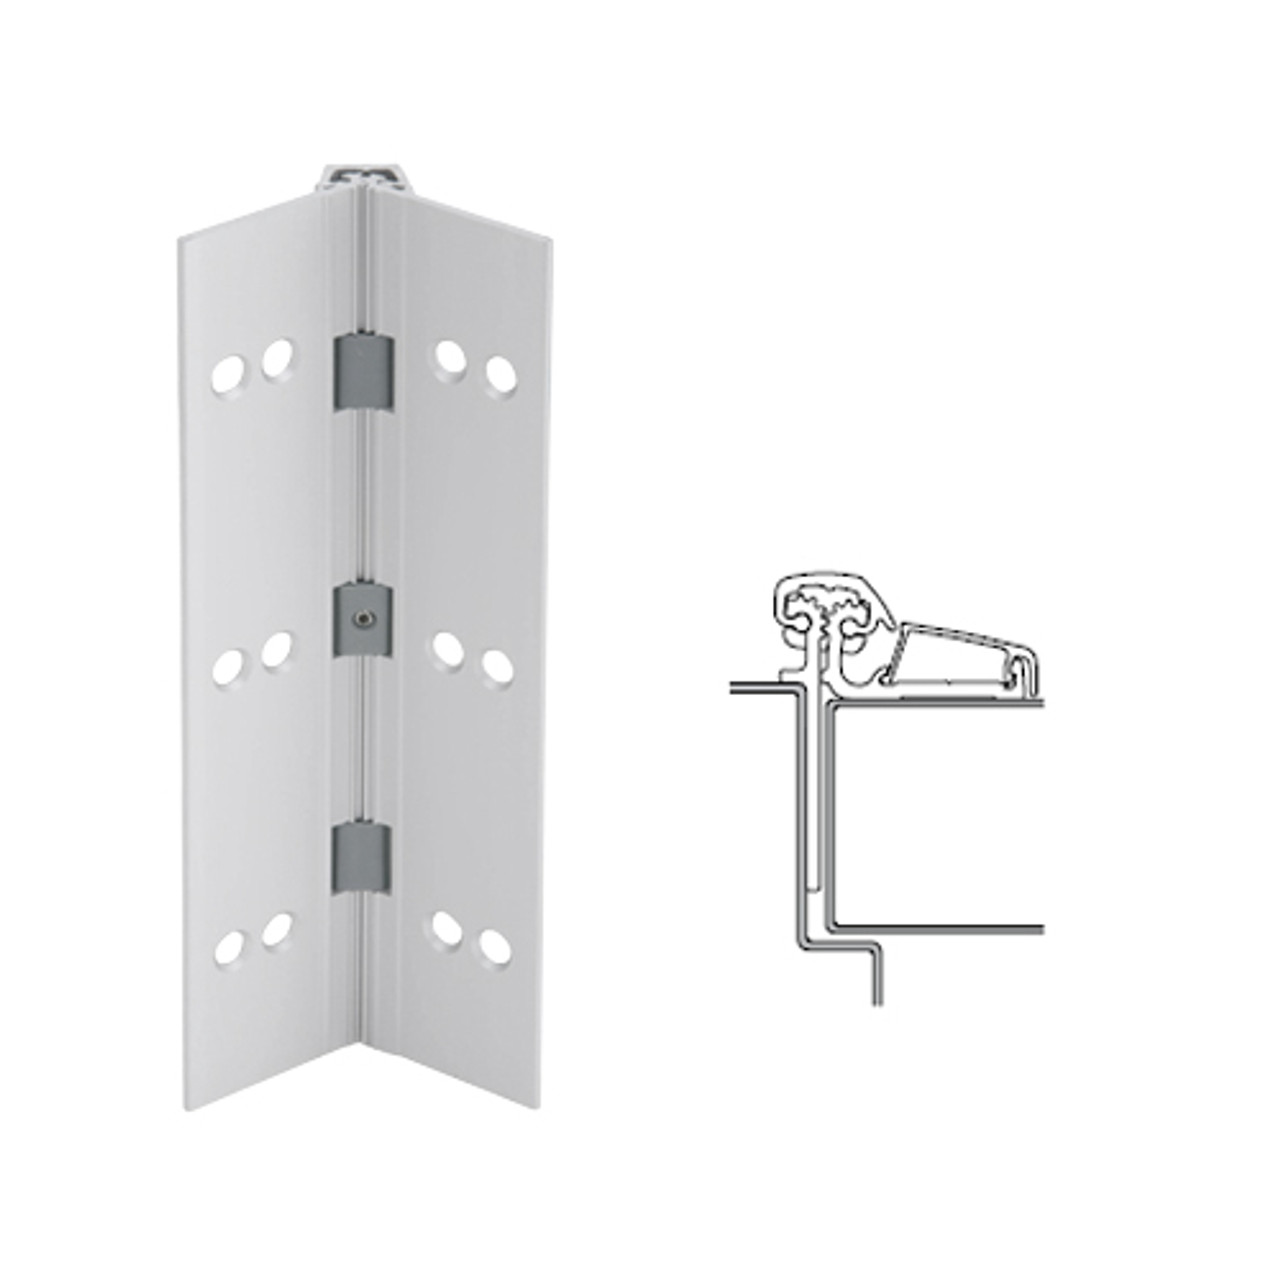 053XY-US28-83-WD IVES Adjustable Half Surface Continuous Geared Hinges with Wood Screws in Satin Aluminum